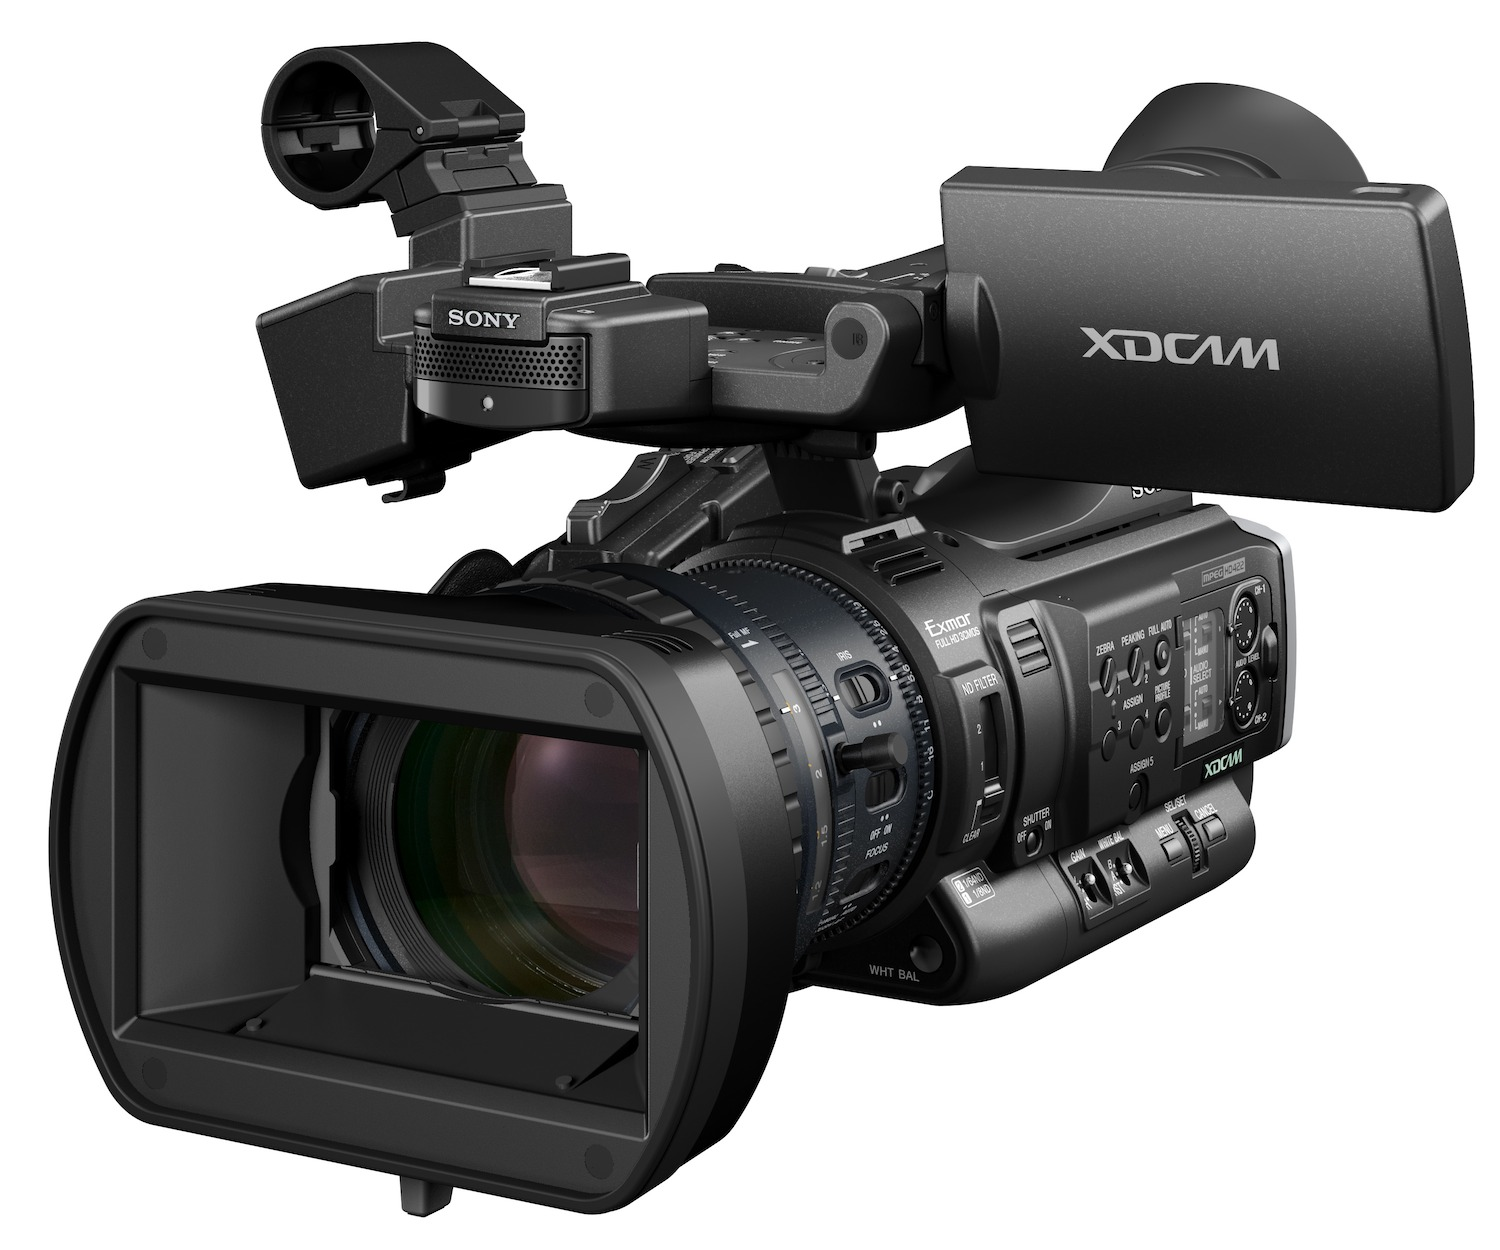 urbanfox tv blog sony pmw 200 xdcam camcorder. Black Bedroom Furniture Sets. Home Design Ideas